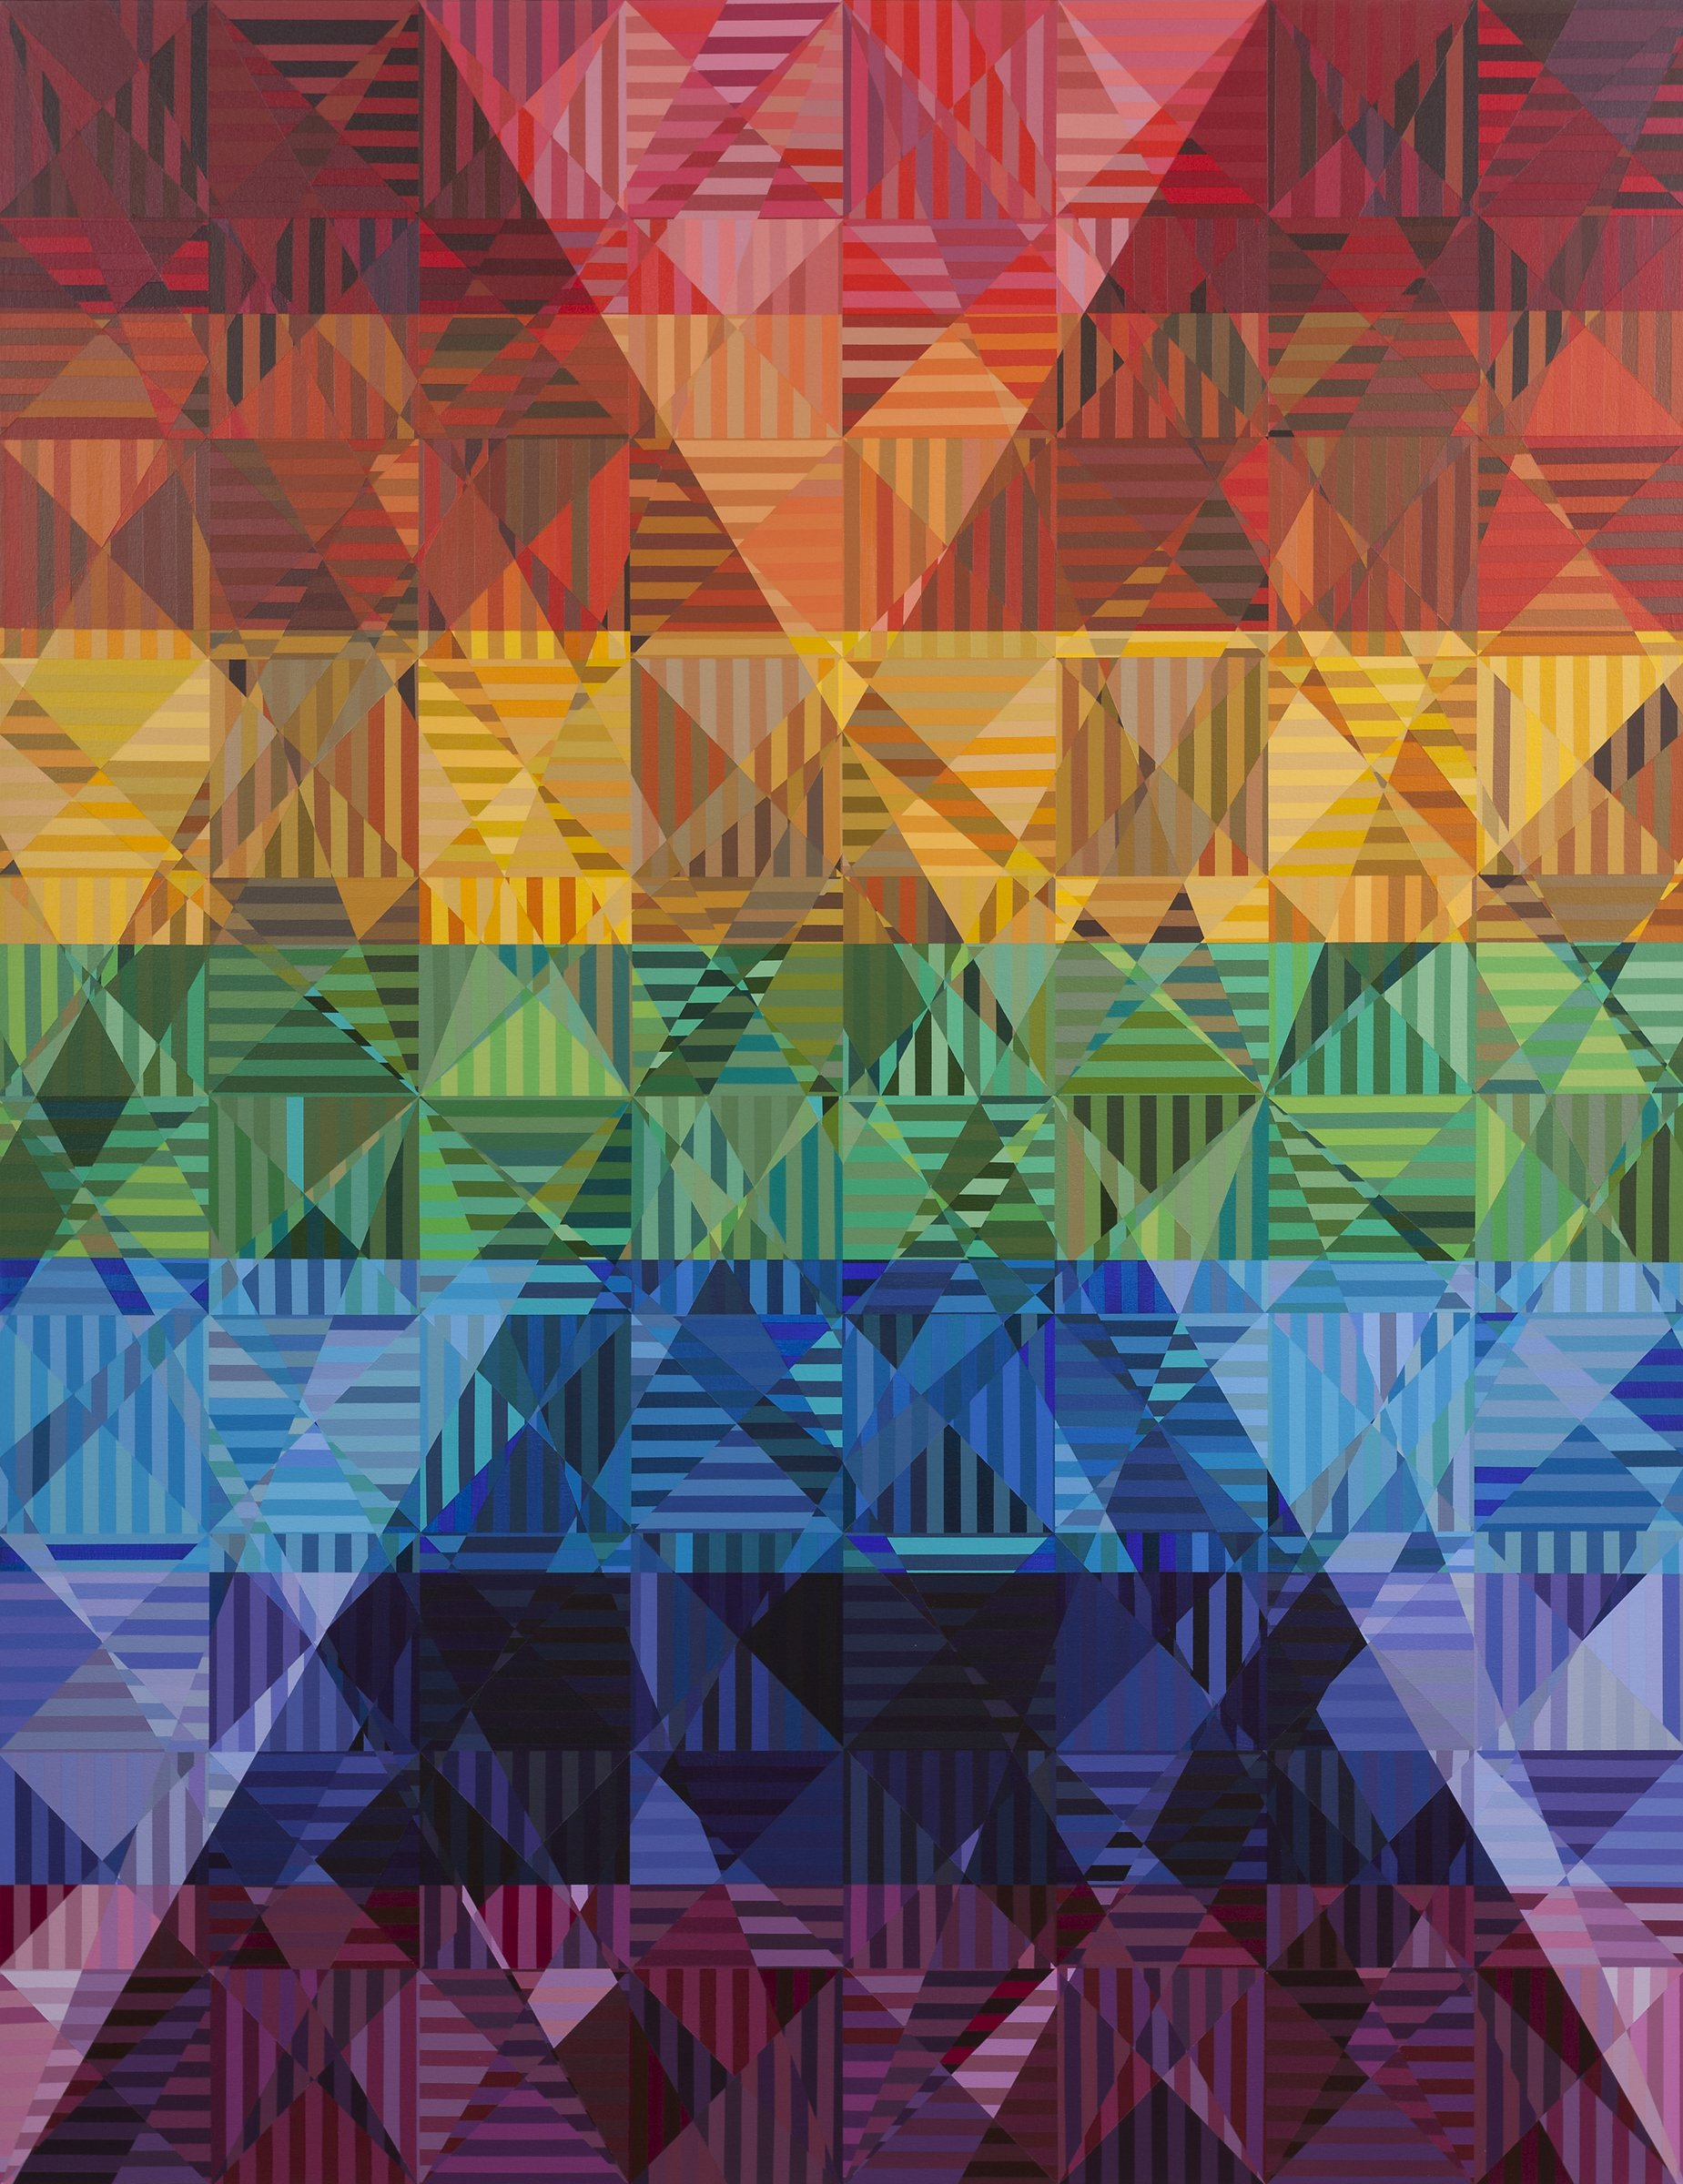 Jerry Walden, Hundred Sixty Five (Chevrons and Sevens), 2015